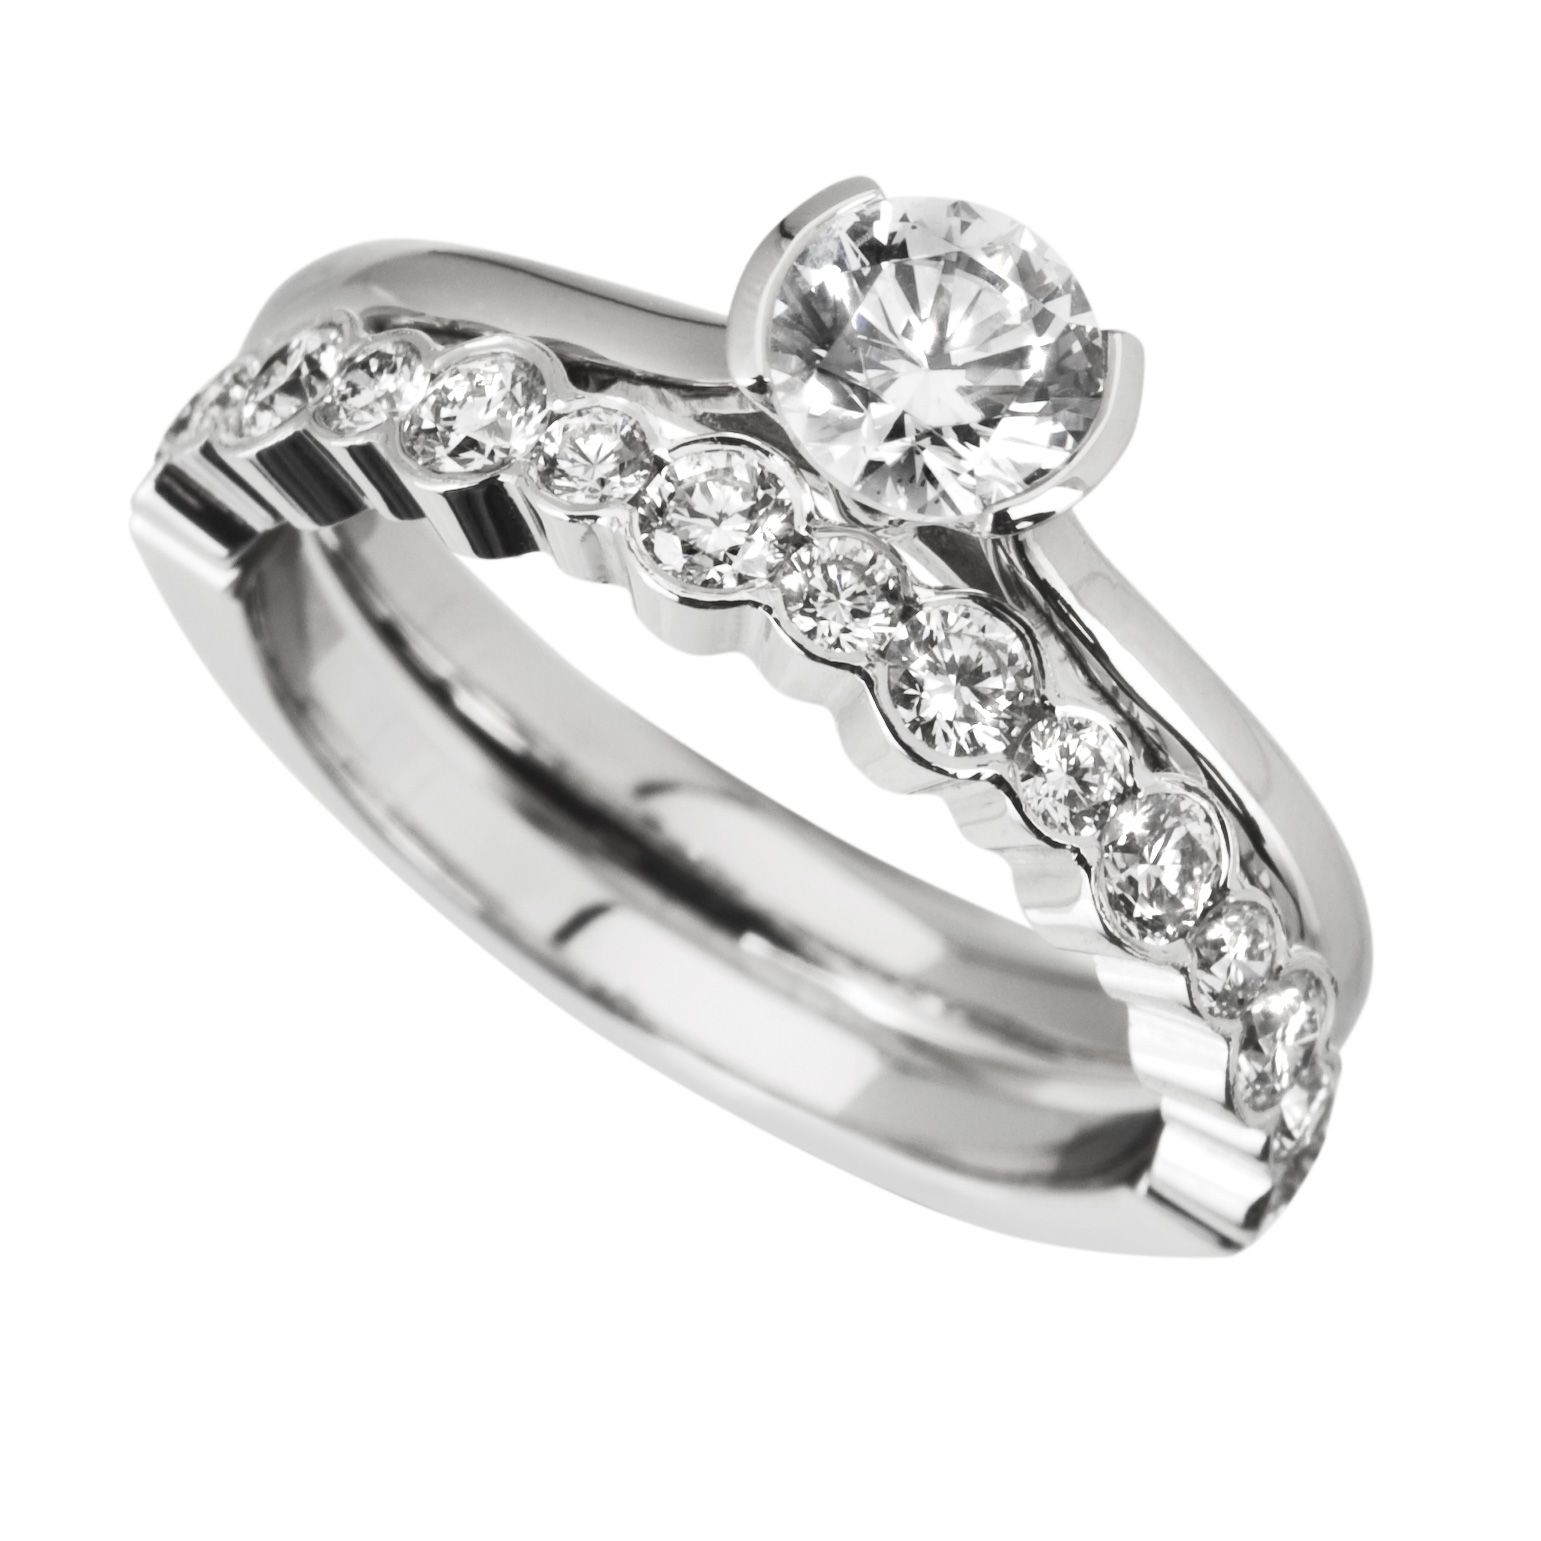 images of wedding rings sets rub over engagement ring with matching diamond - Engagement And Wedding Ring Sets